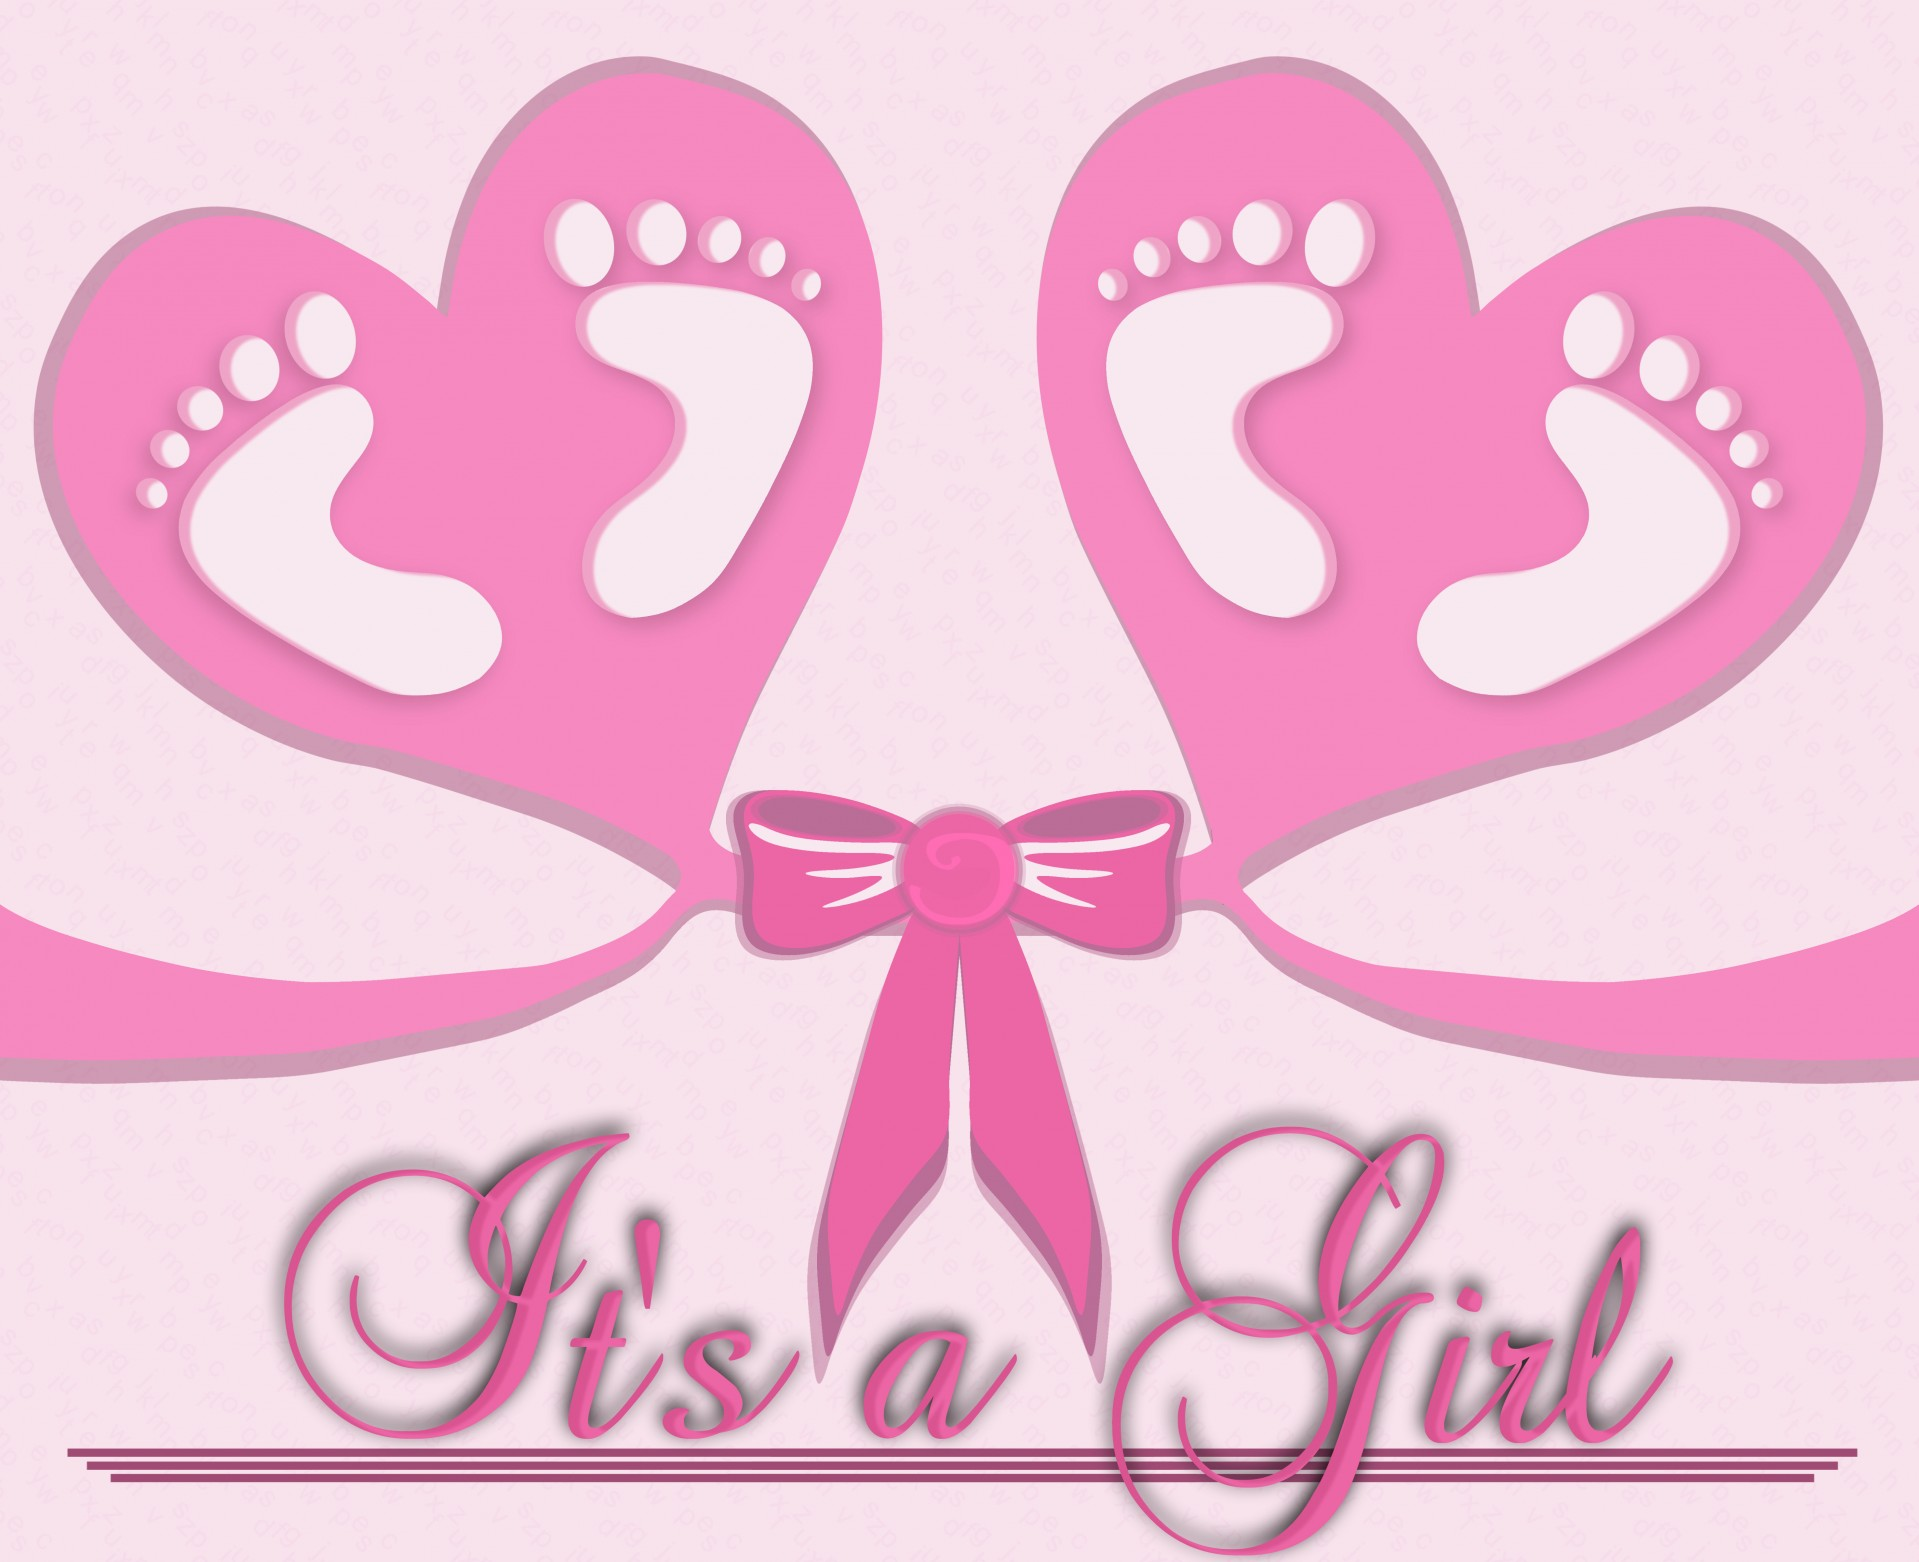 WE ARE DELIGHTED TO ANNOUNCE THE ARRIVAL OF TERRIANN'S BABY GIRL!